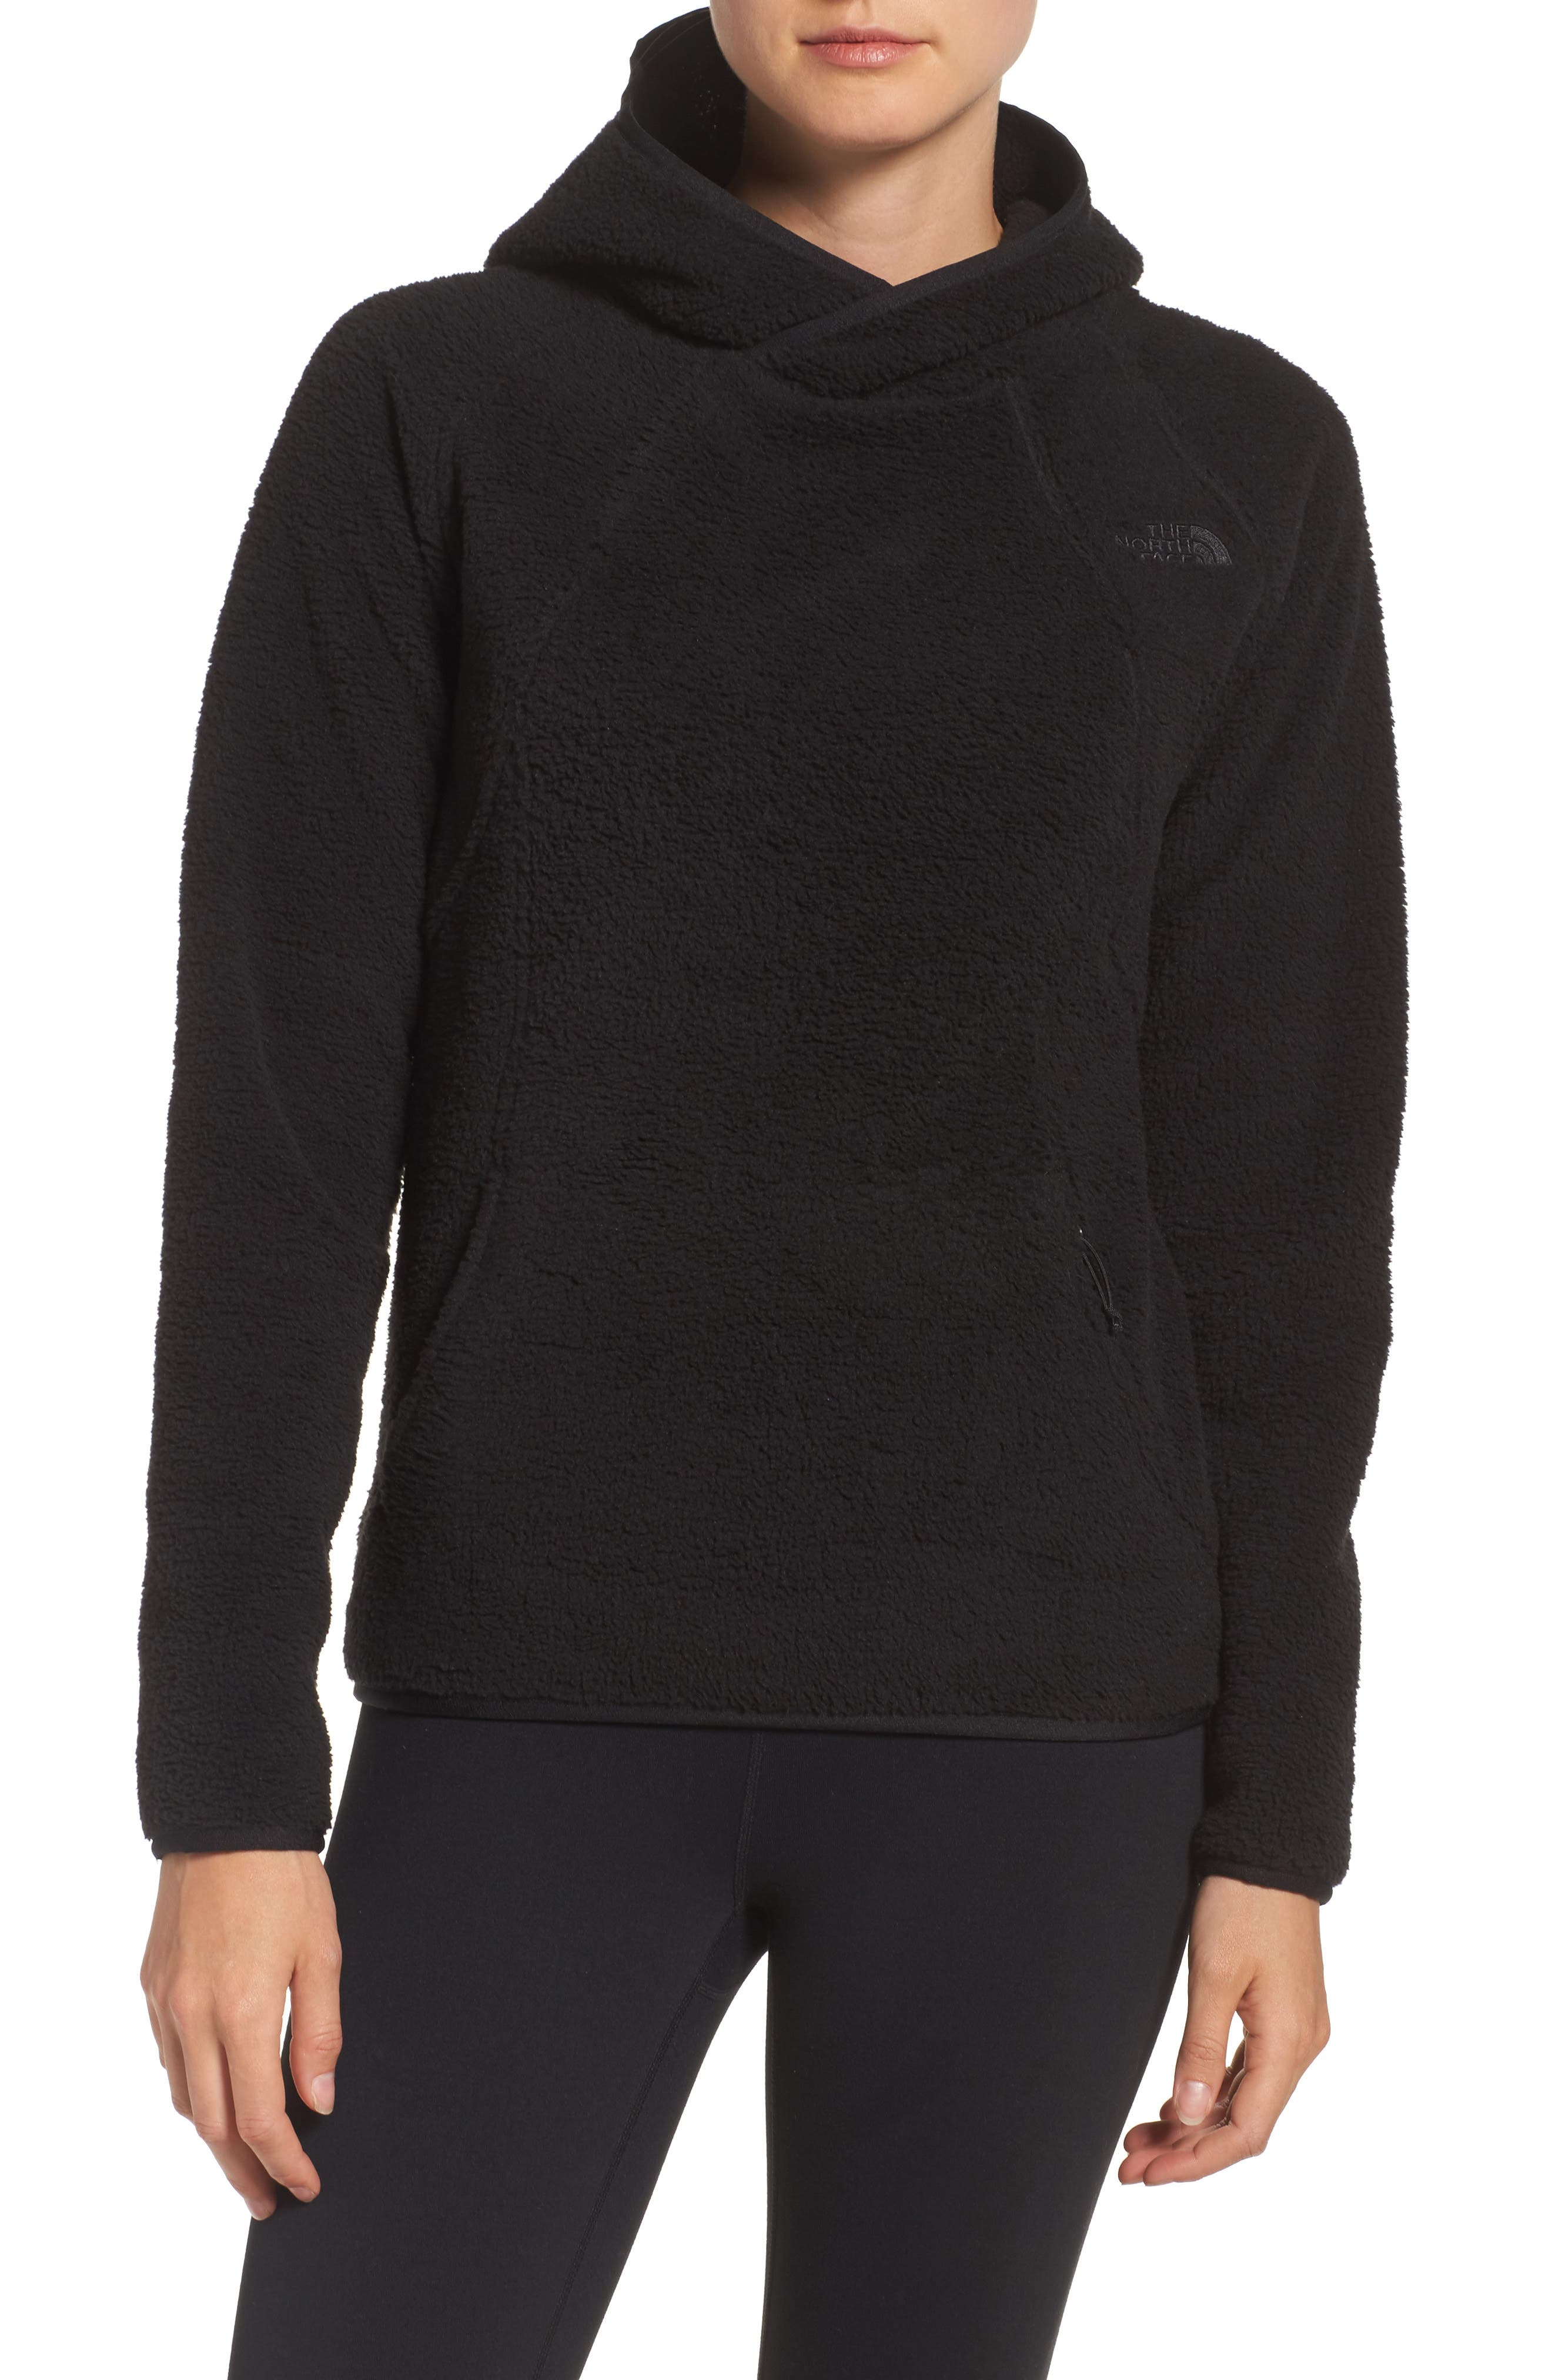 Main Image - The North Face Hooded Fleece Pullover